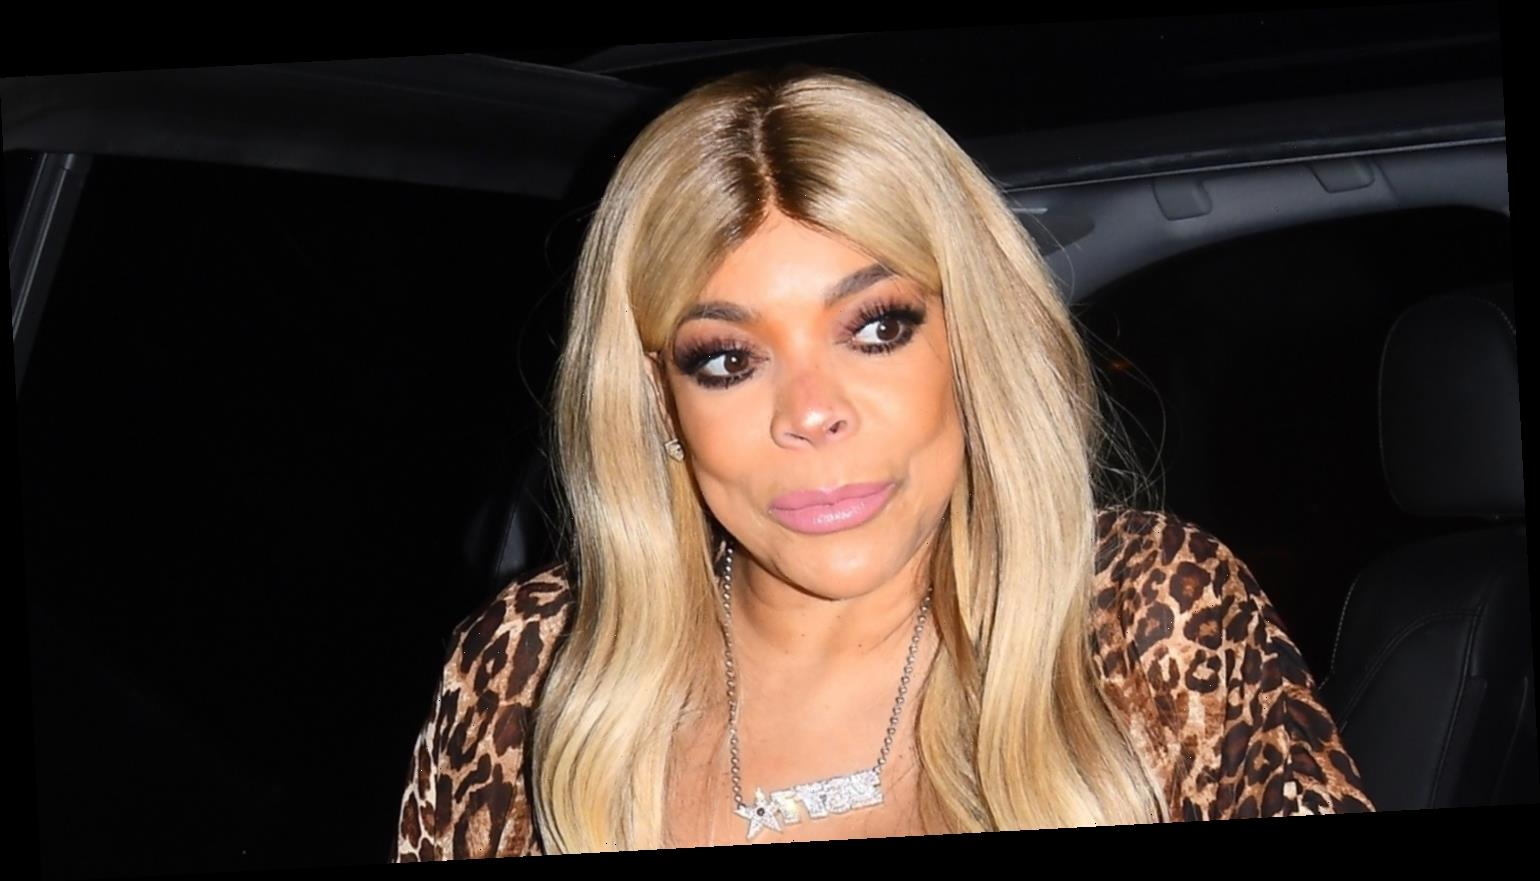 Wendy Williams Rocks Leopard-Print Outfit for Dinner in WeHo